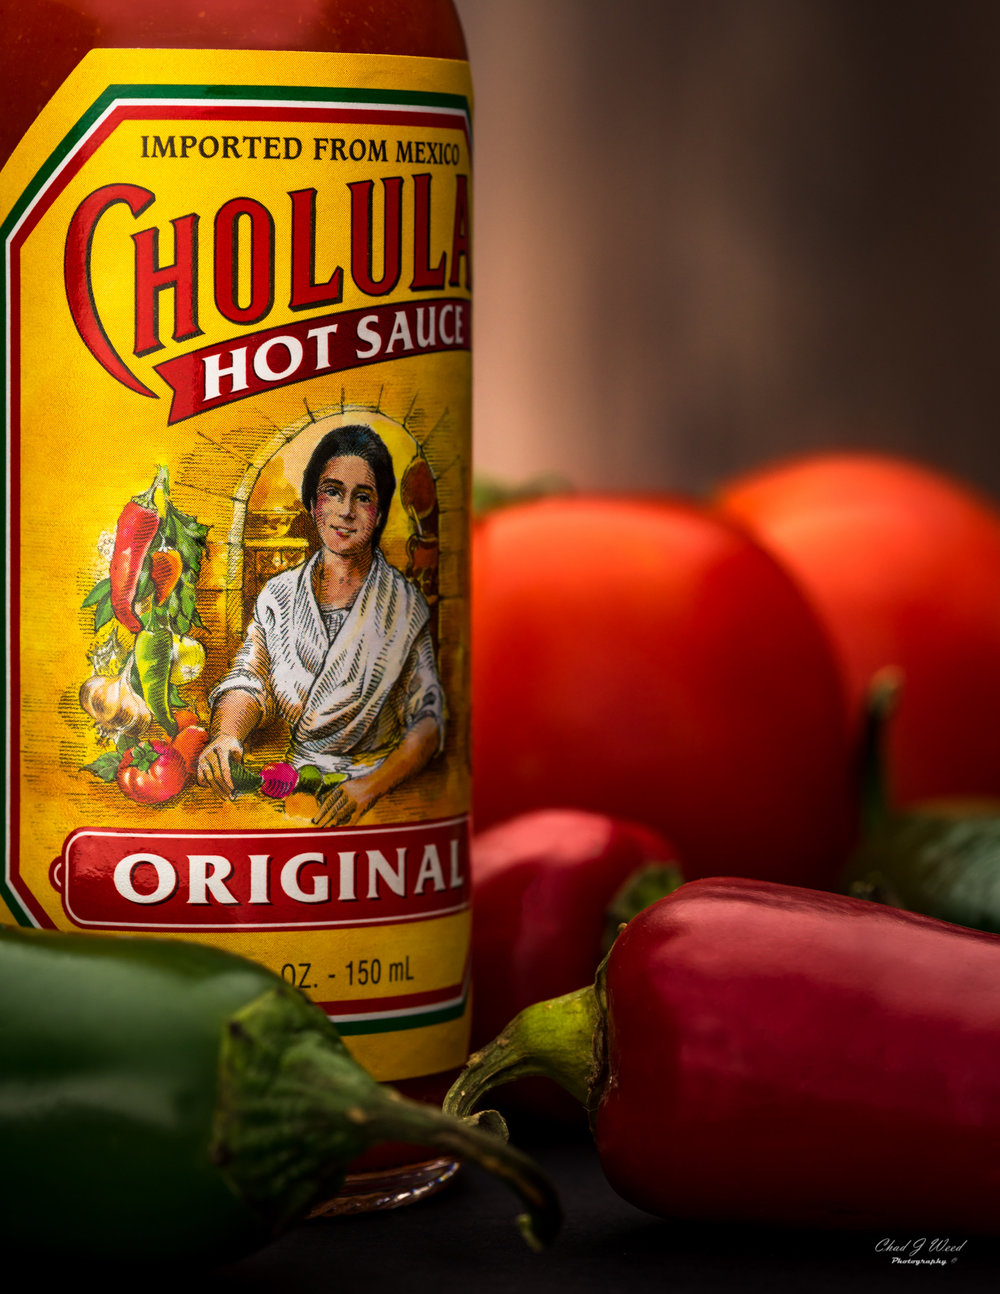 Cholula Hot Sauce Bottle Label by Arizona Commercial Food Photographer Chad J Weed